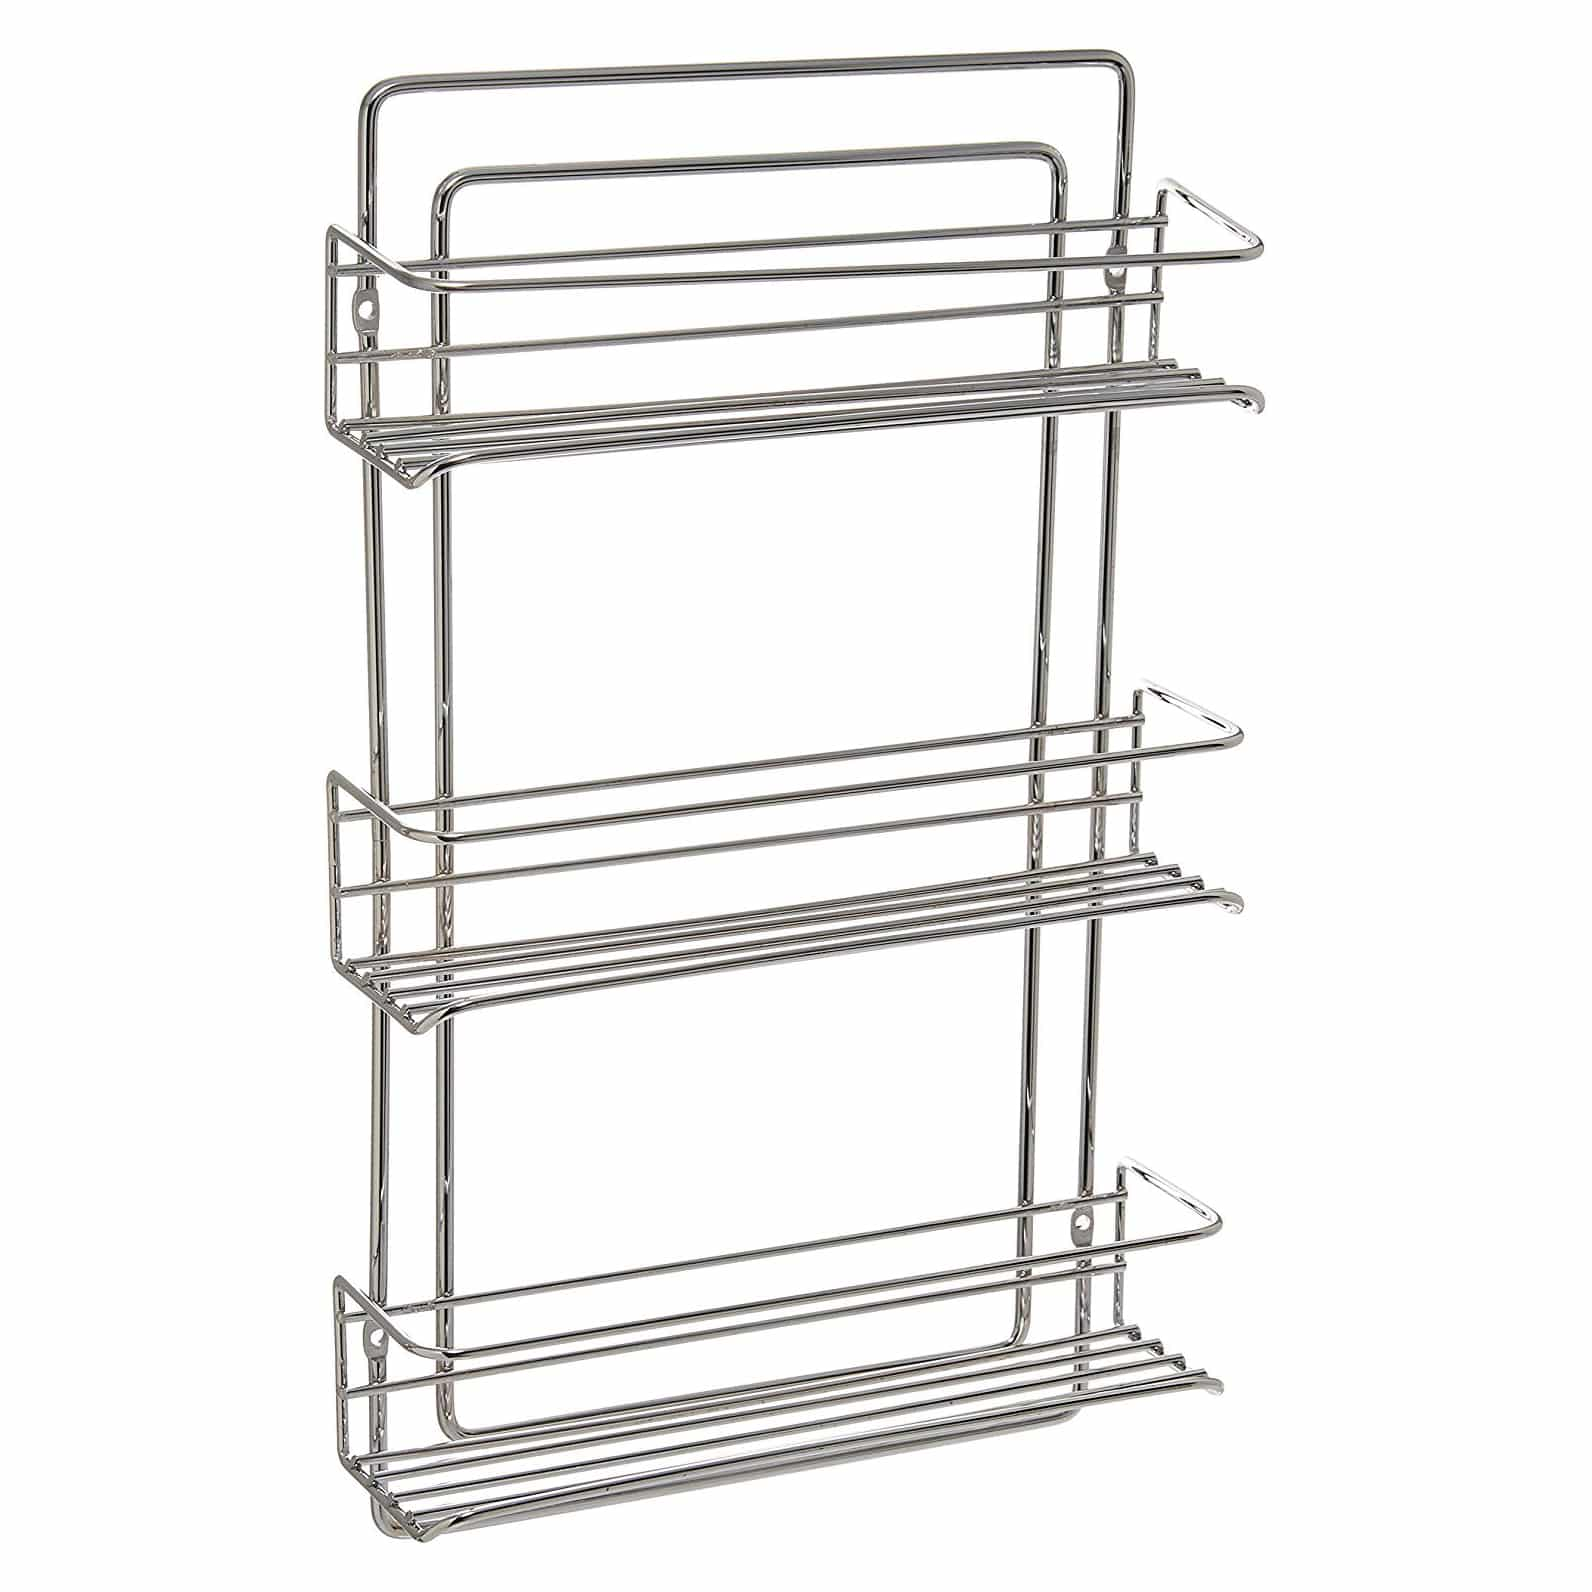 Organize It All 1812W Spice Rack